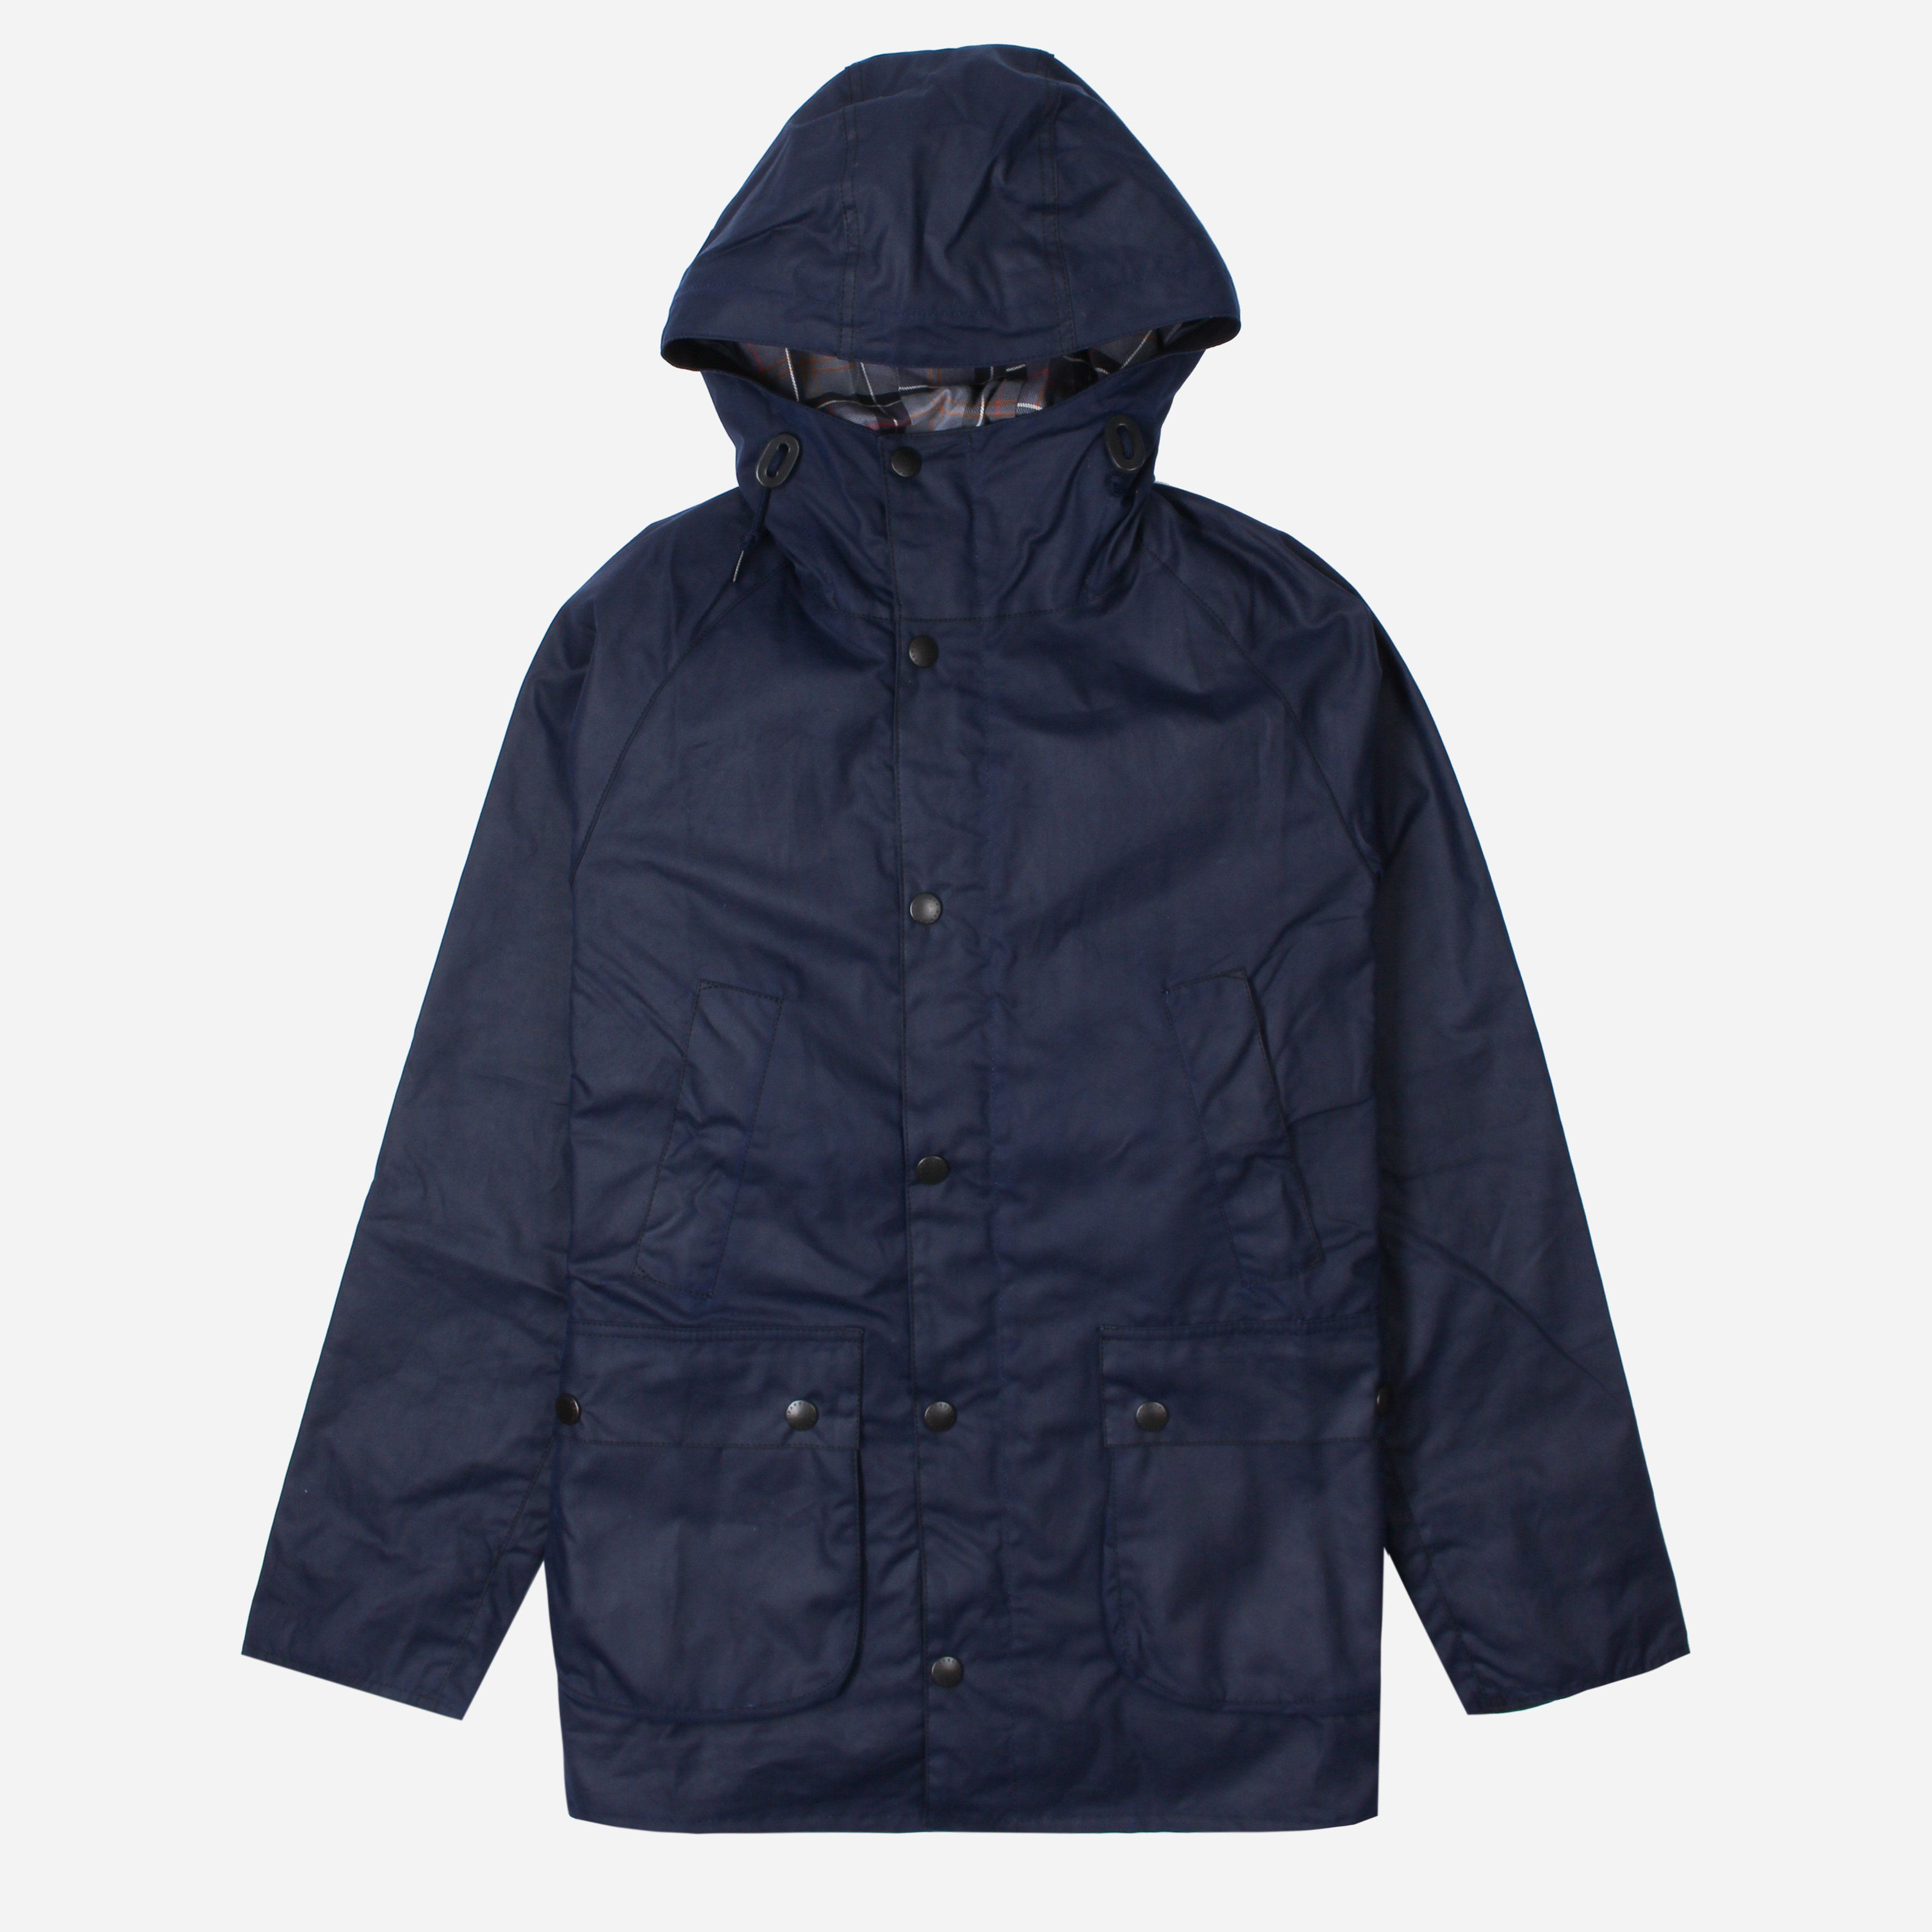 Barbour MWX1369IN71 SL BEDALE HOODED WAX JACKET